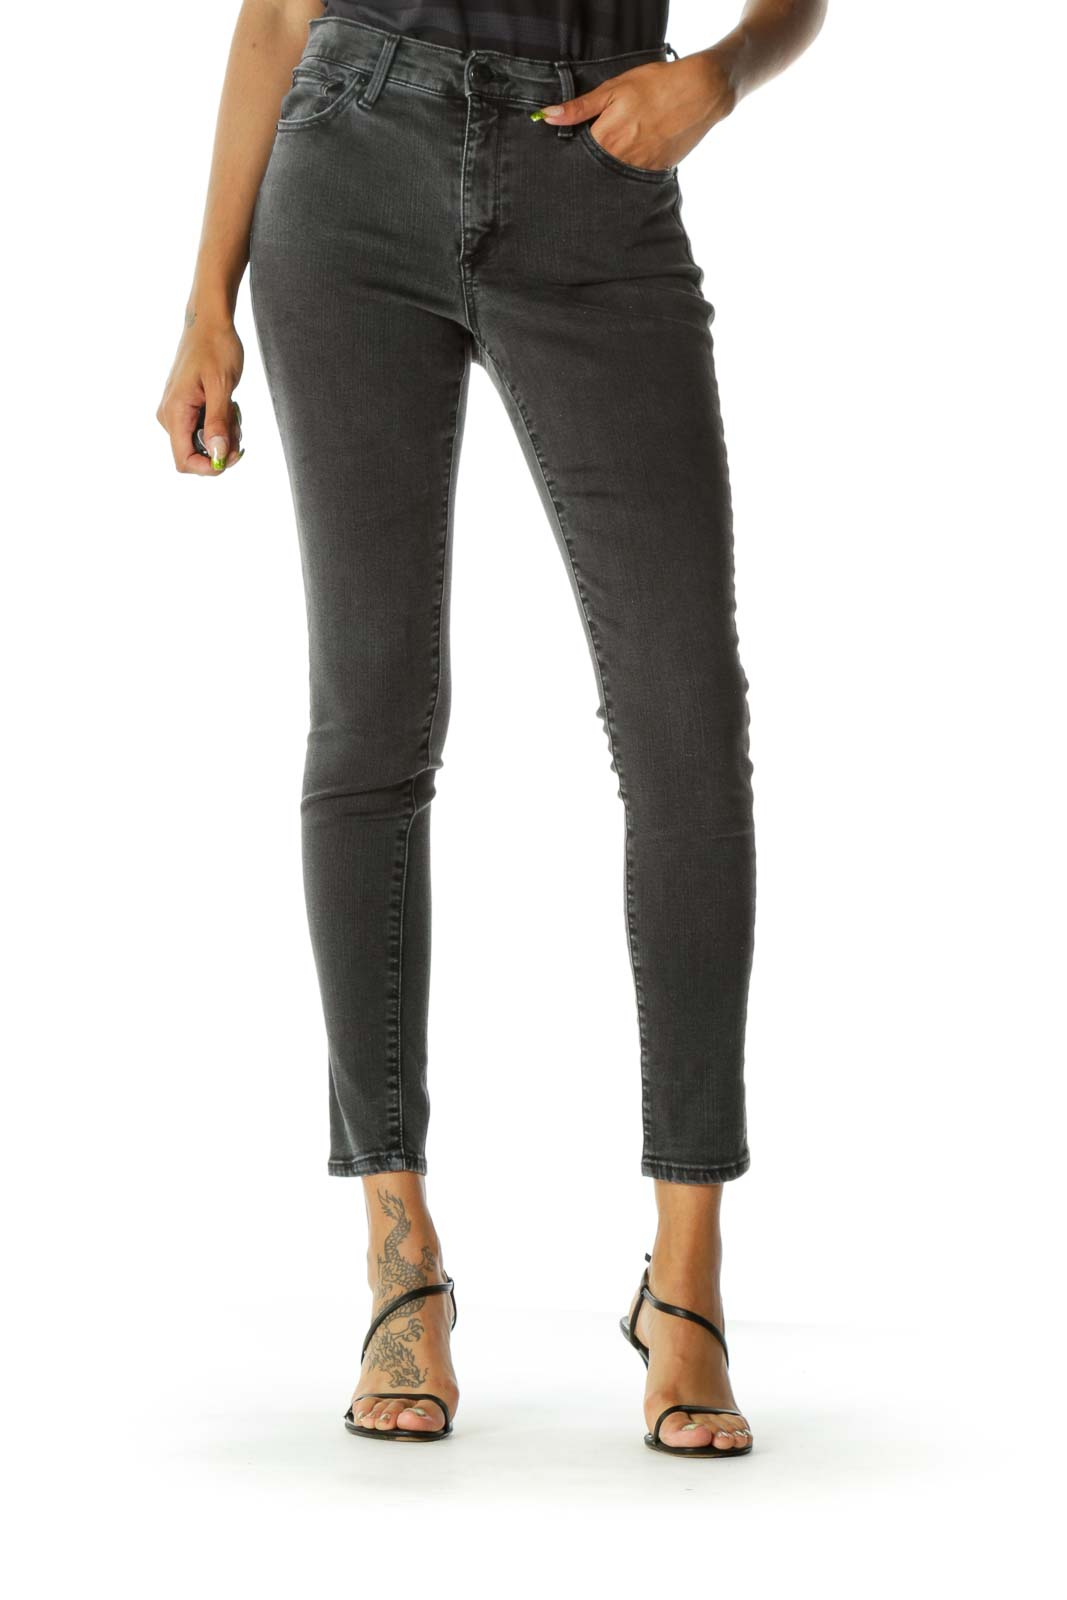 Gray Faded Wash Pocketed Skinny Stretch Pants